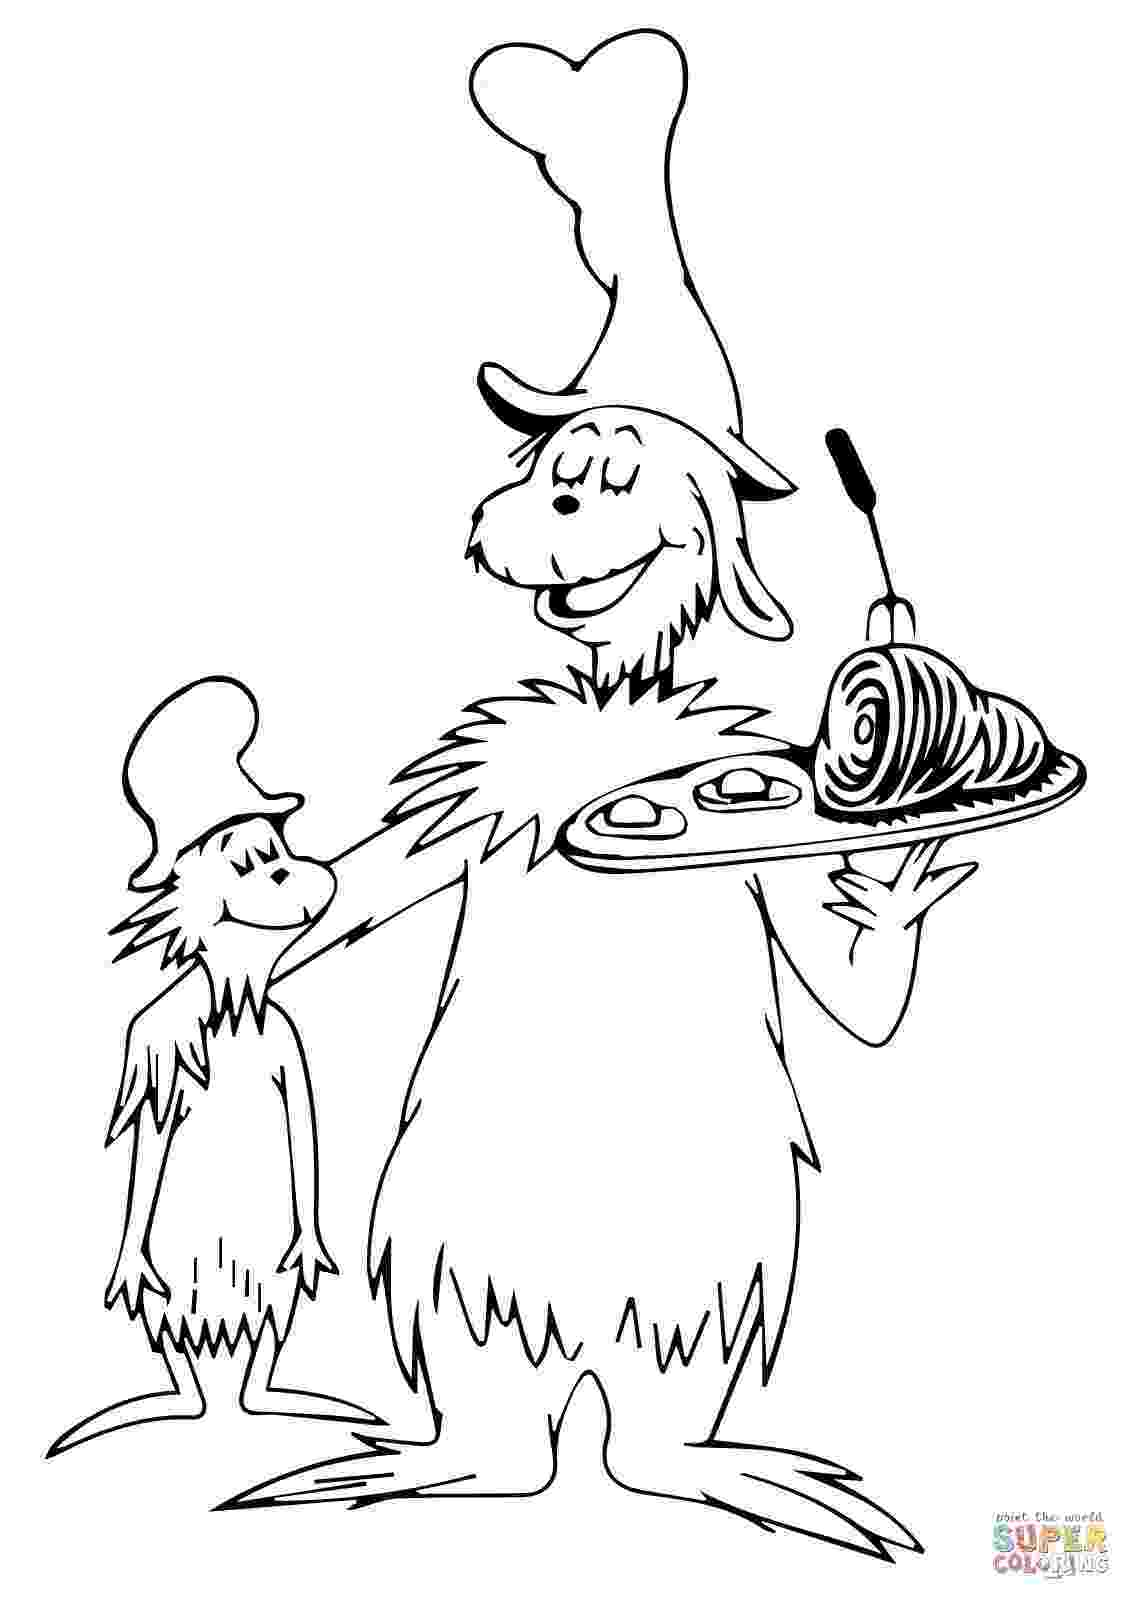 green eggs and ham coloring sheets green eggs and ham coloring page dr seuss coloring pages and eggs sheets coloring ham green